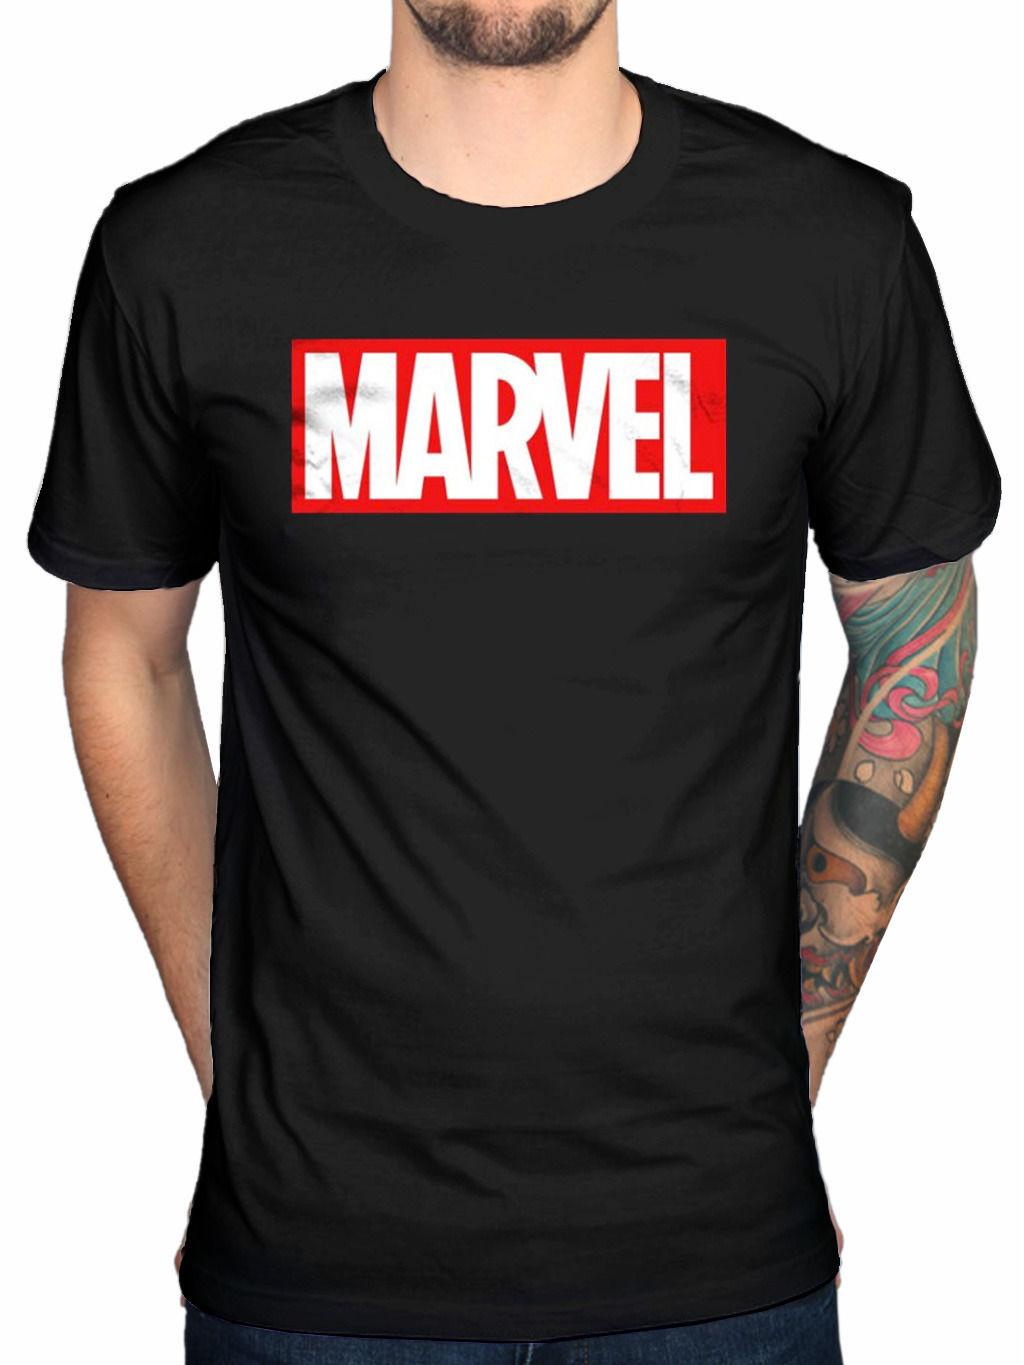 Official Marvel Comics Box Logo T Shirt Hulk Thor Captain America